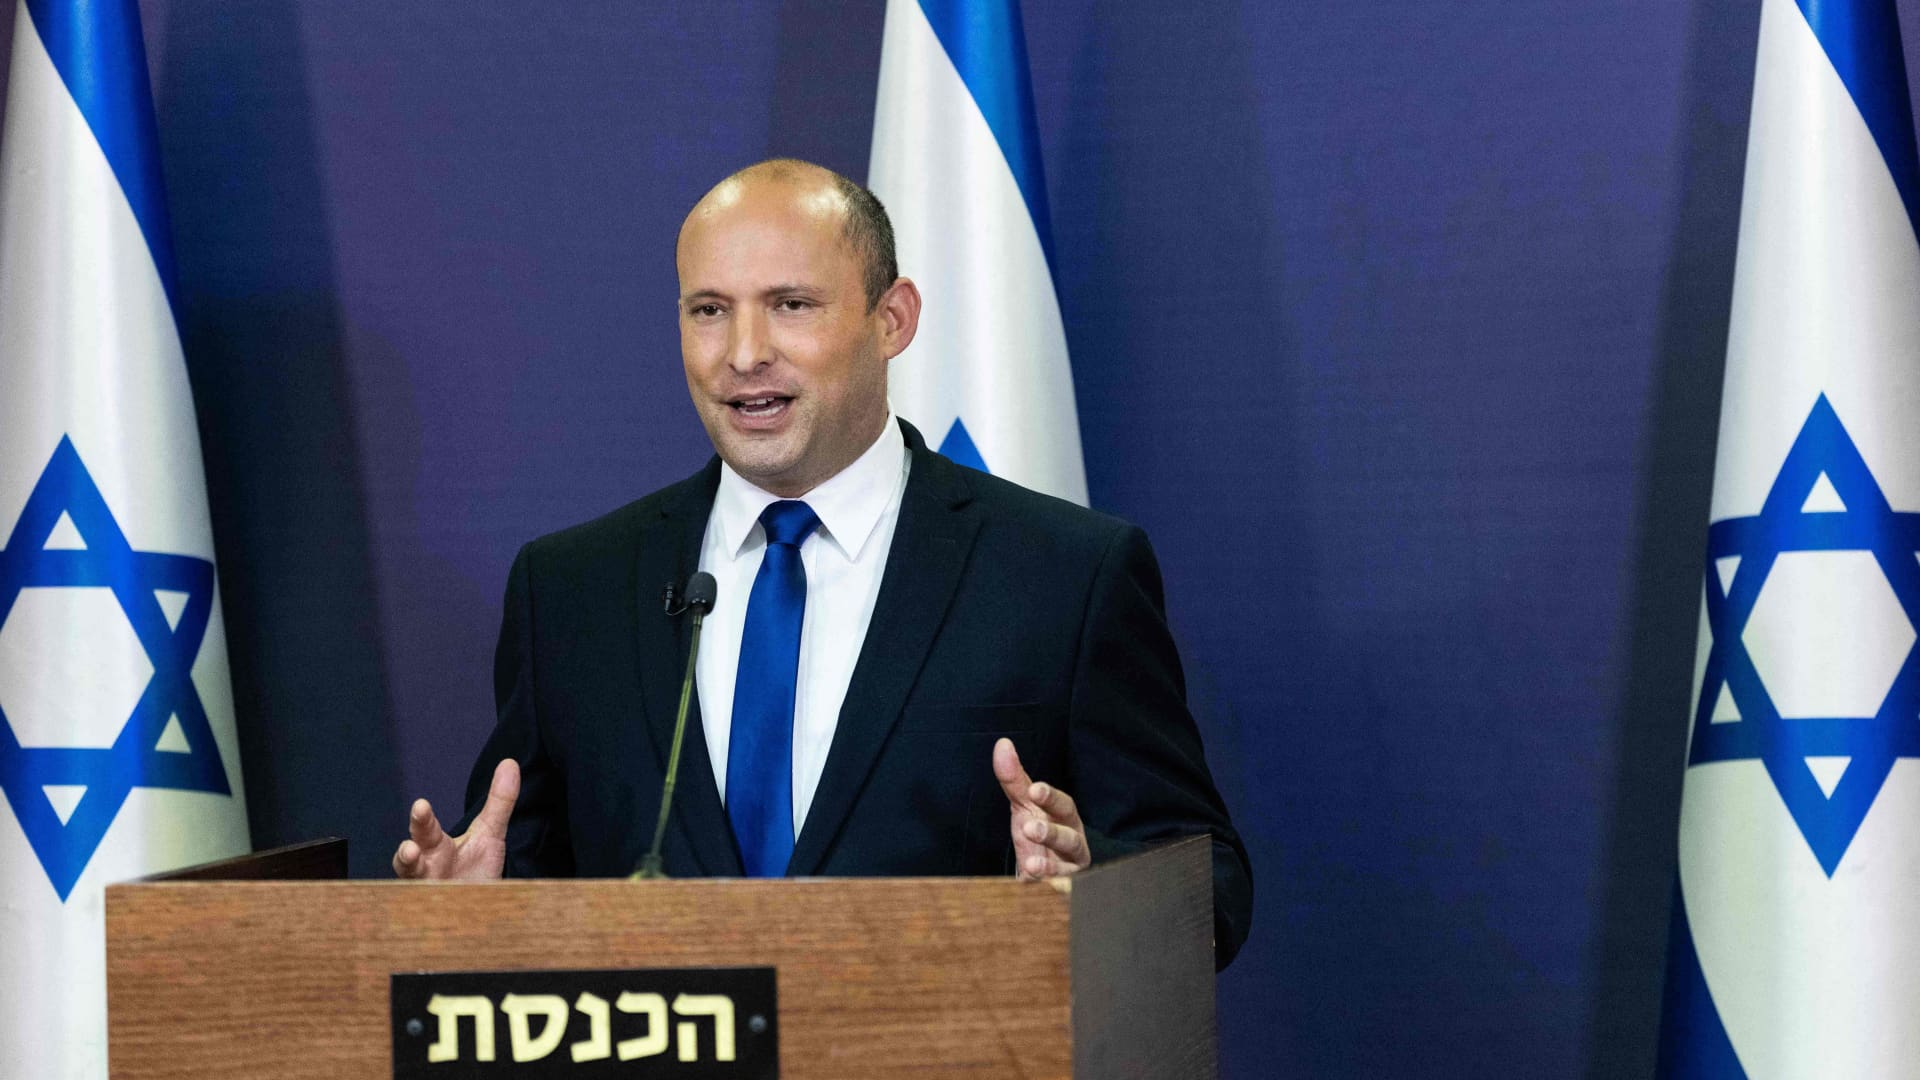 Leader of the Israeli Yemina party, Naftali Bennett, delivers a political statement at the Knesset, the Israeli Parliament, in Jerusalem, on May 30, 2021.